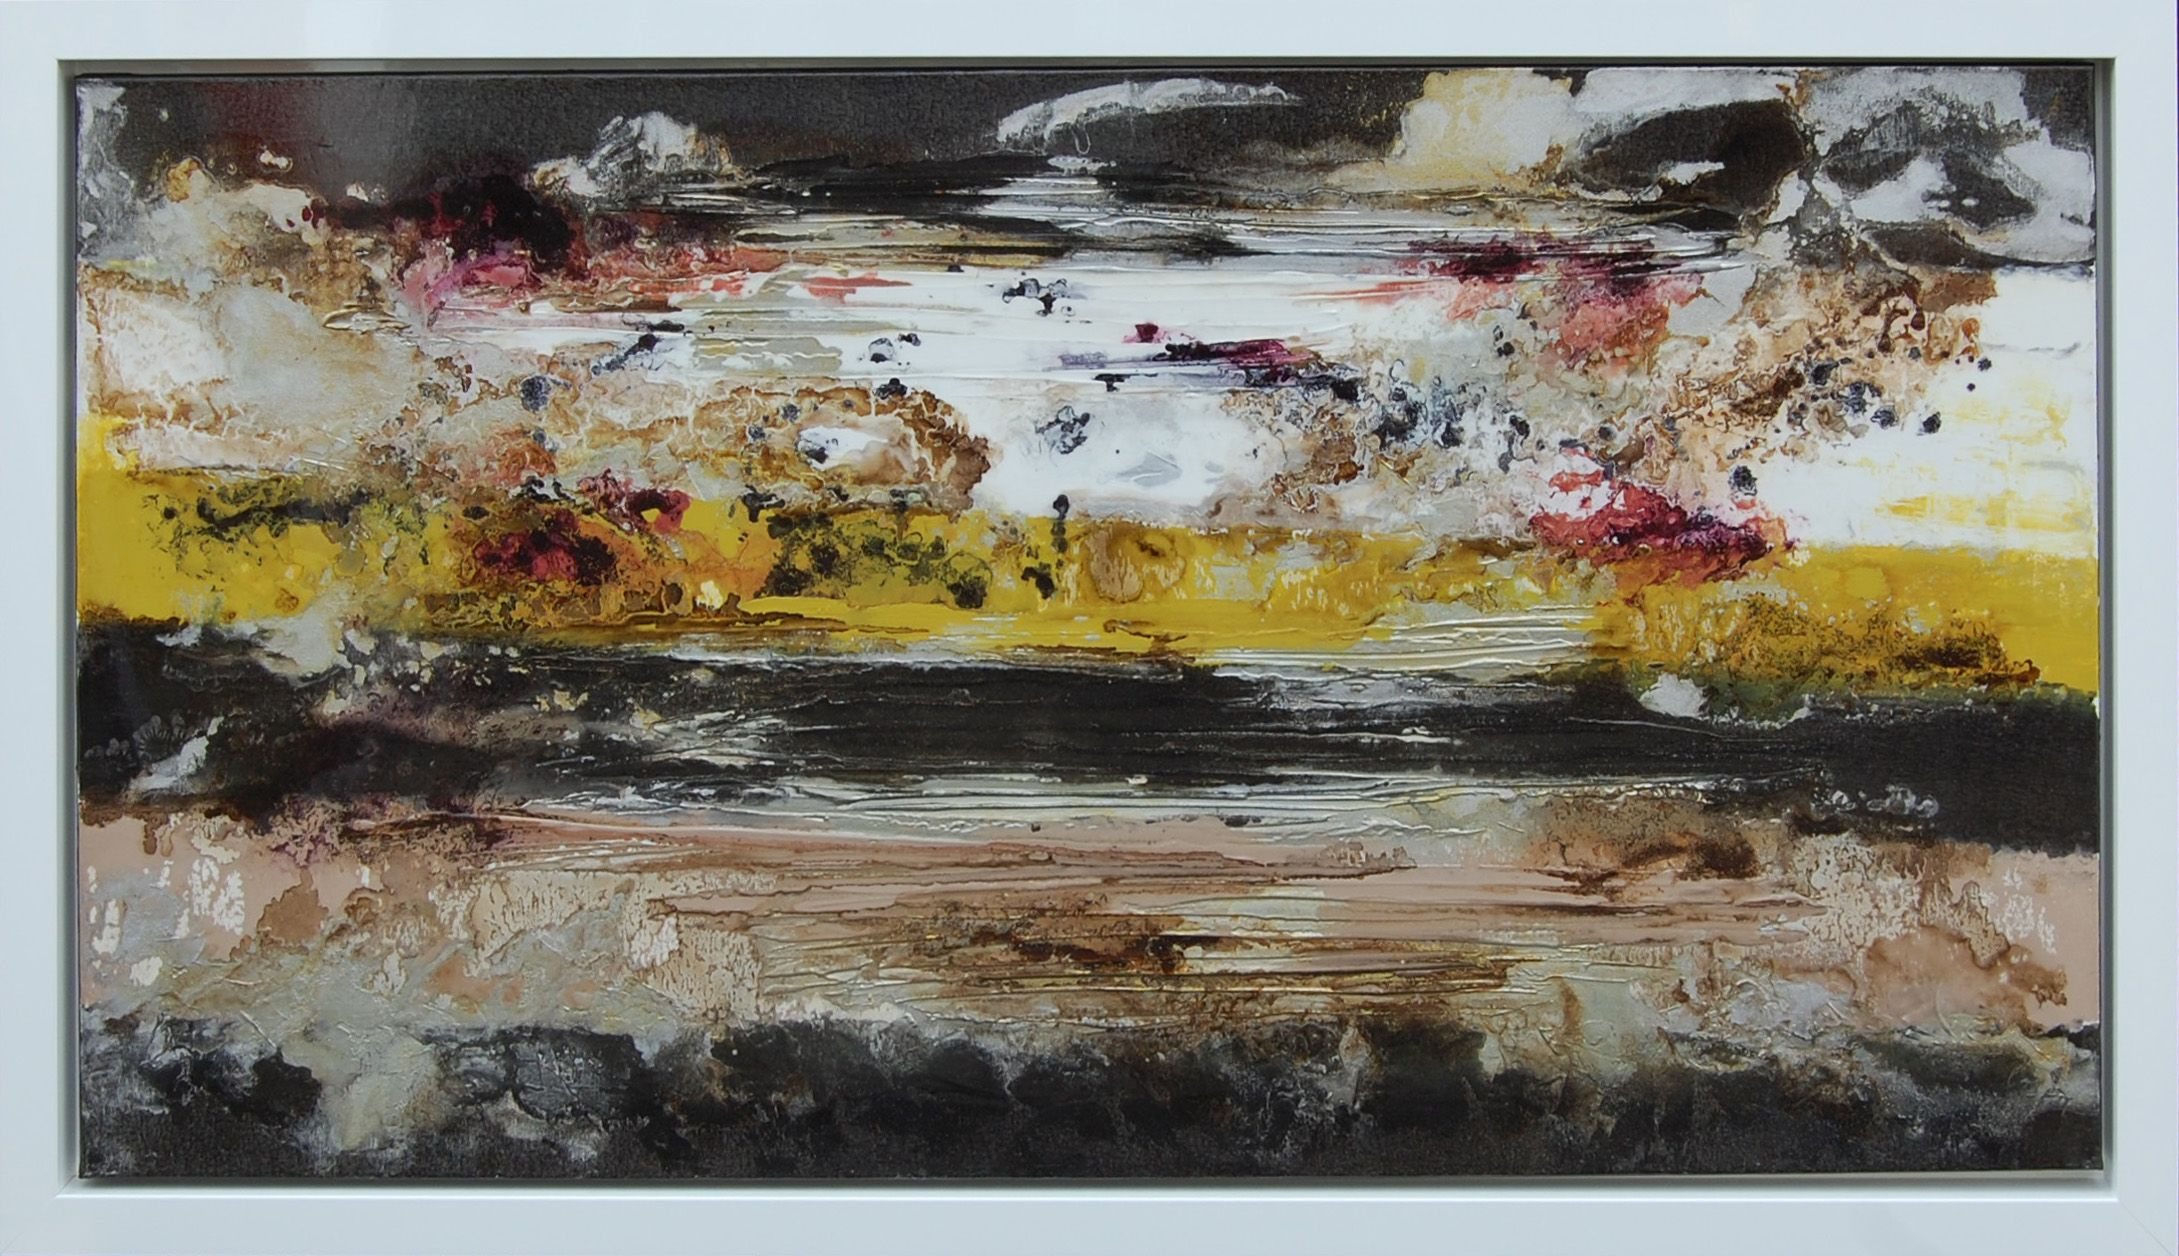 Original Abstract Resin Art For Sale Artwork For Bathroom Room